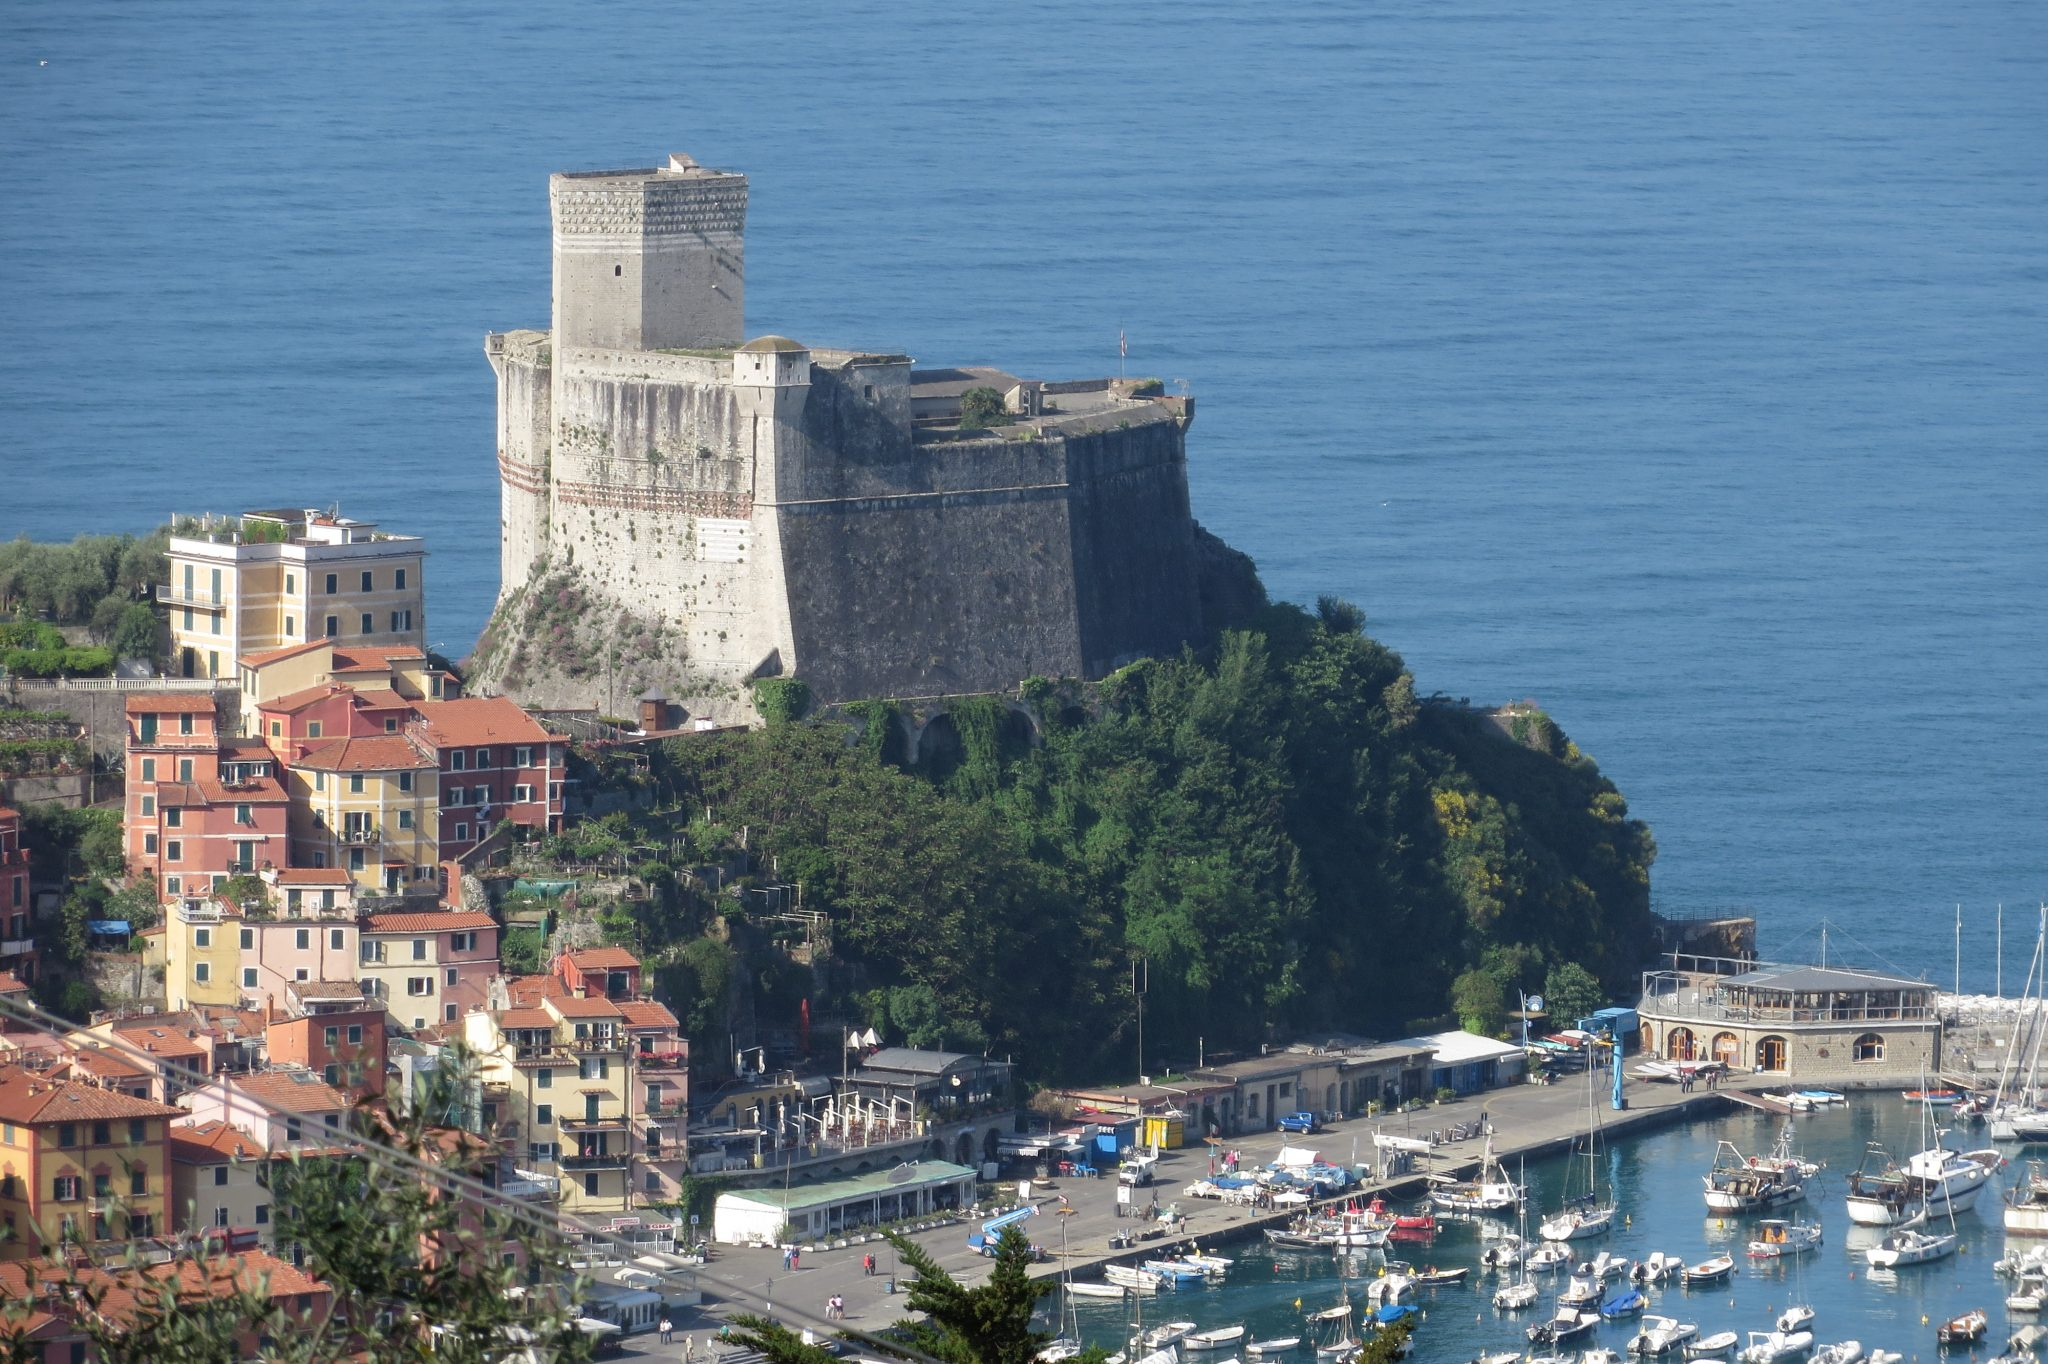 The castle of Lerici in the Poet's Gulf